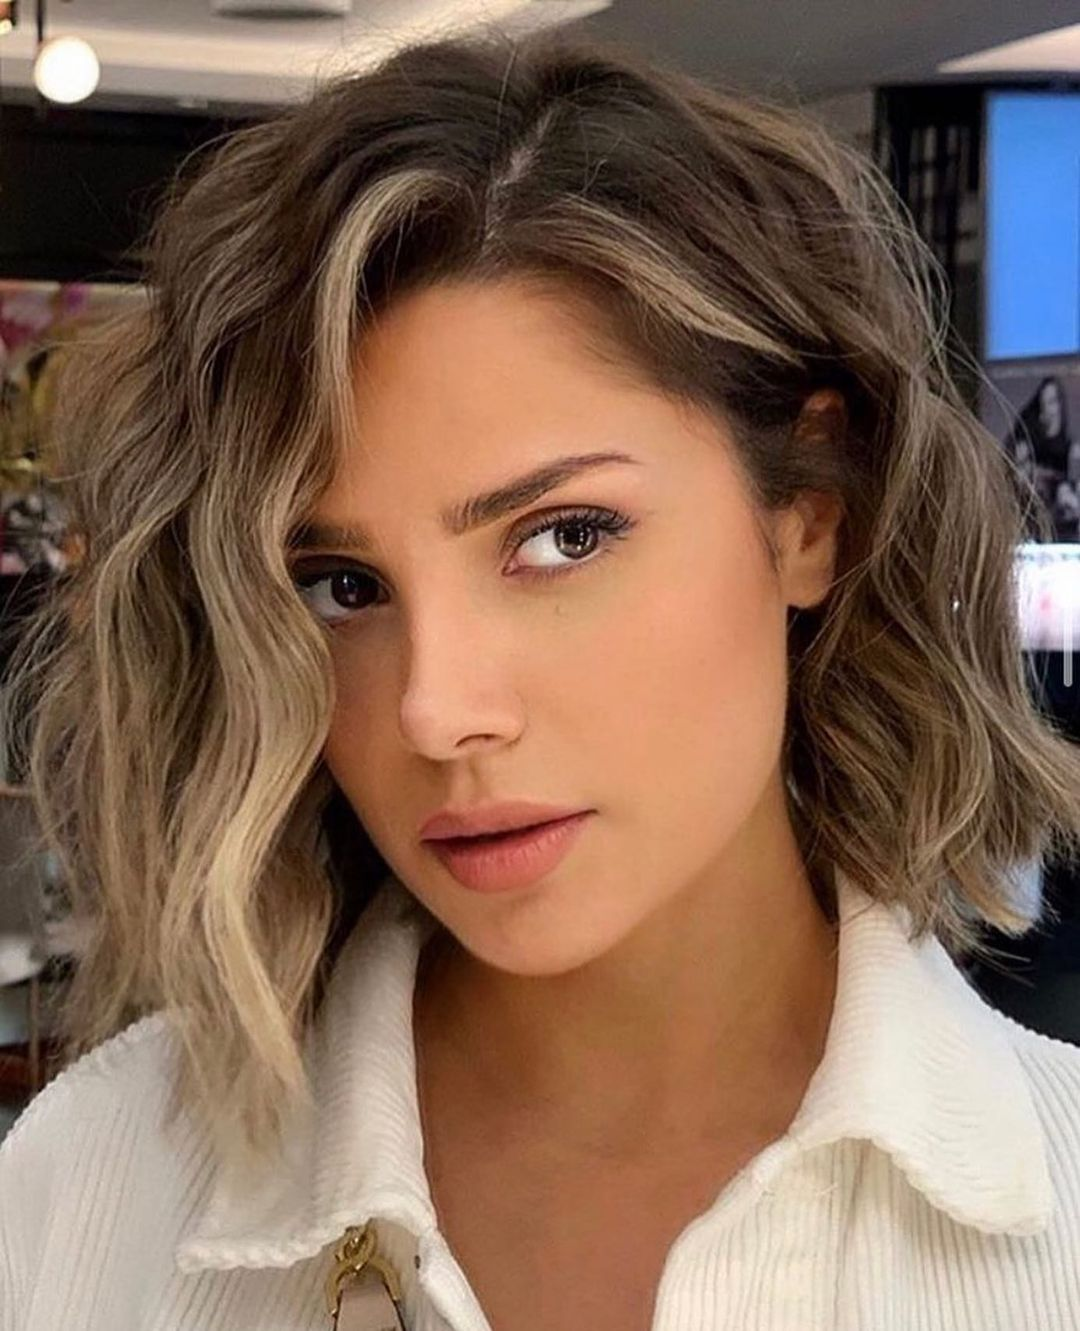 Trendy Lob Hairstyles for Thick Hair | Lob Hair Color 2021 - 2022